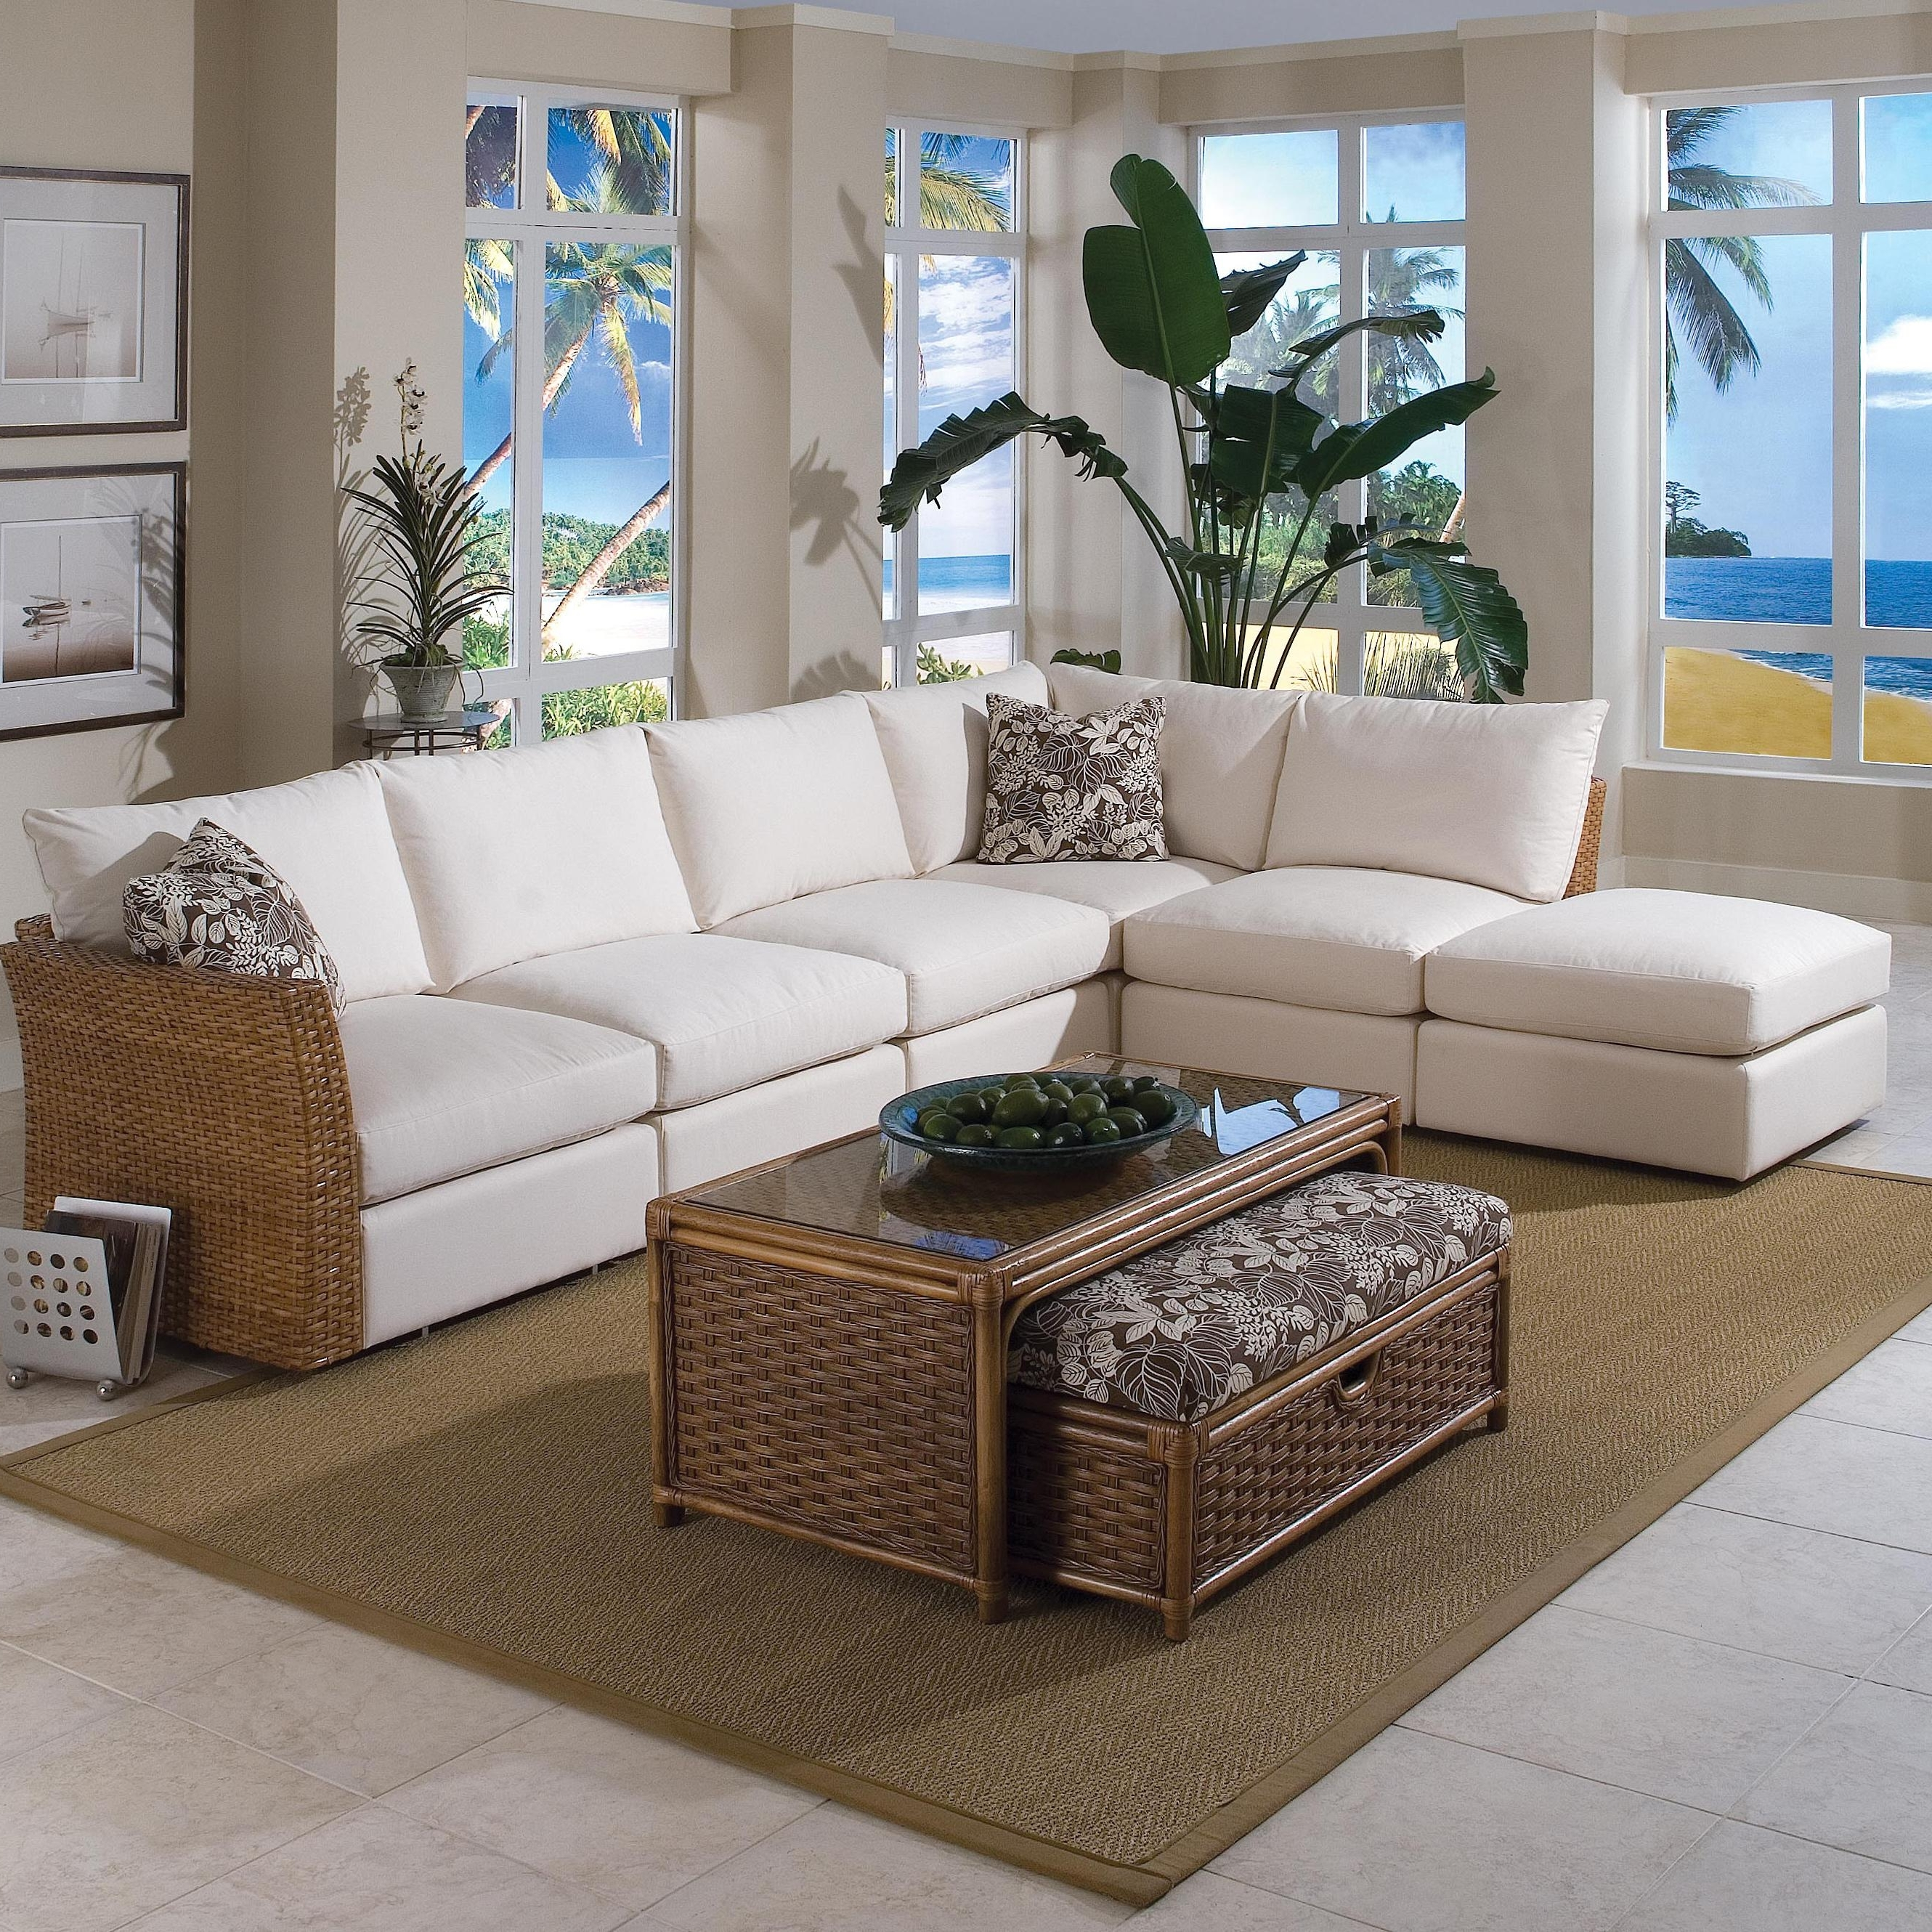 Braxton Culler Grand Water Point Tropical Sectional Sofa With Two Throughout Well Liked Sectional Sofas In Savannah Ga (View 4 of 20)